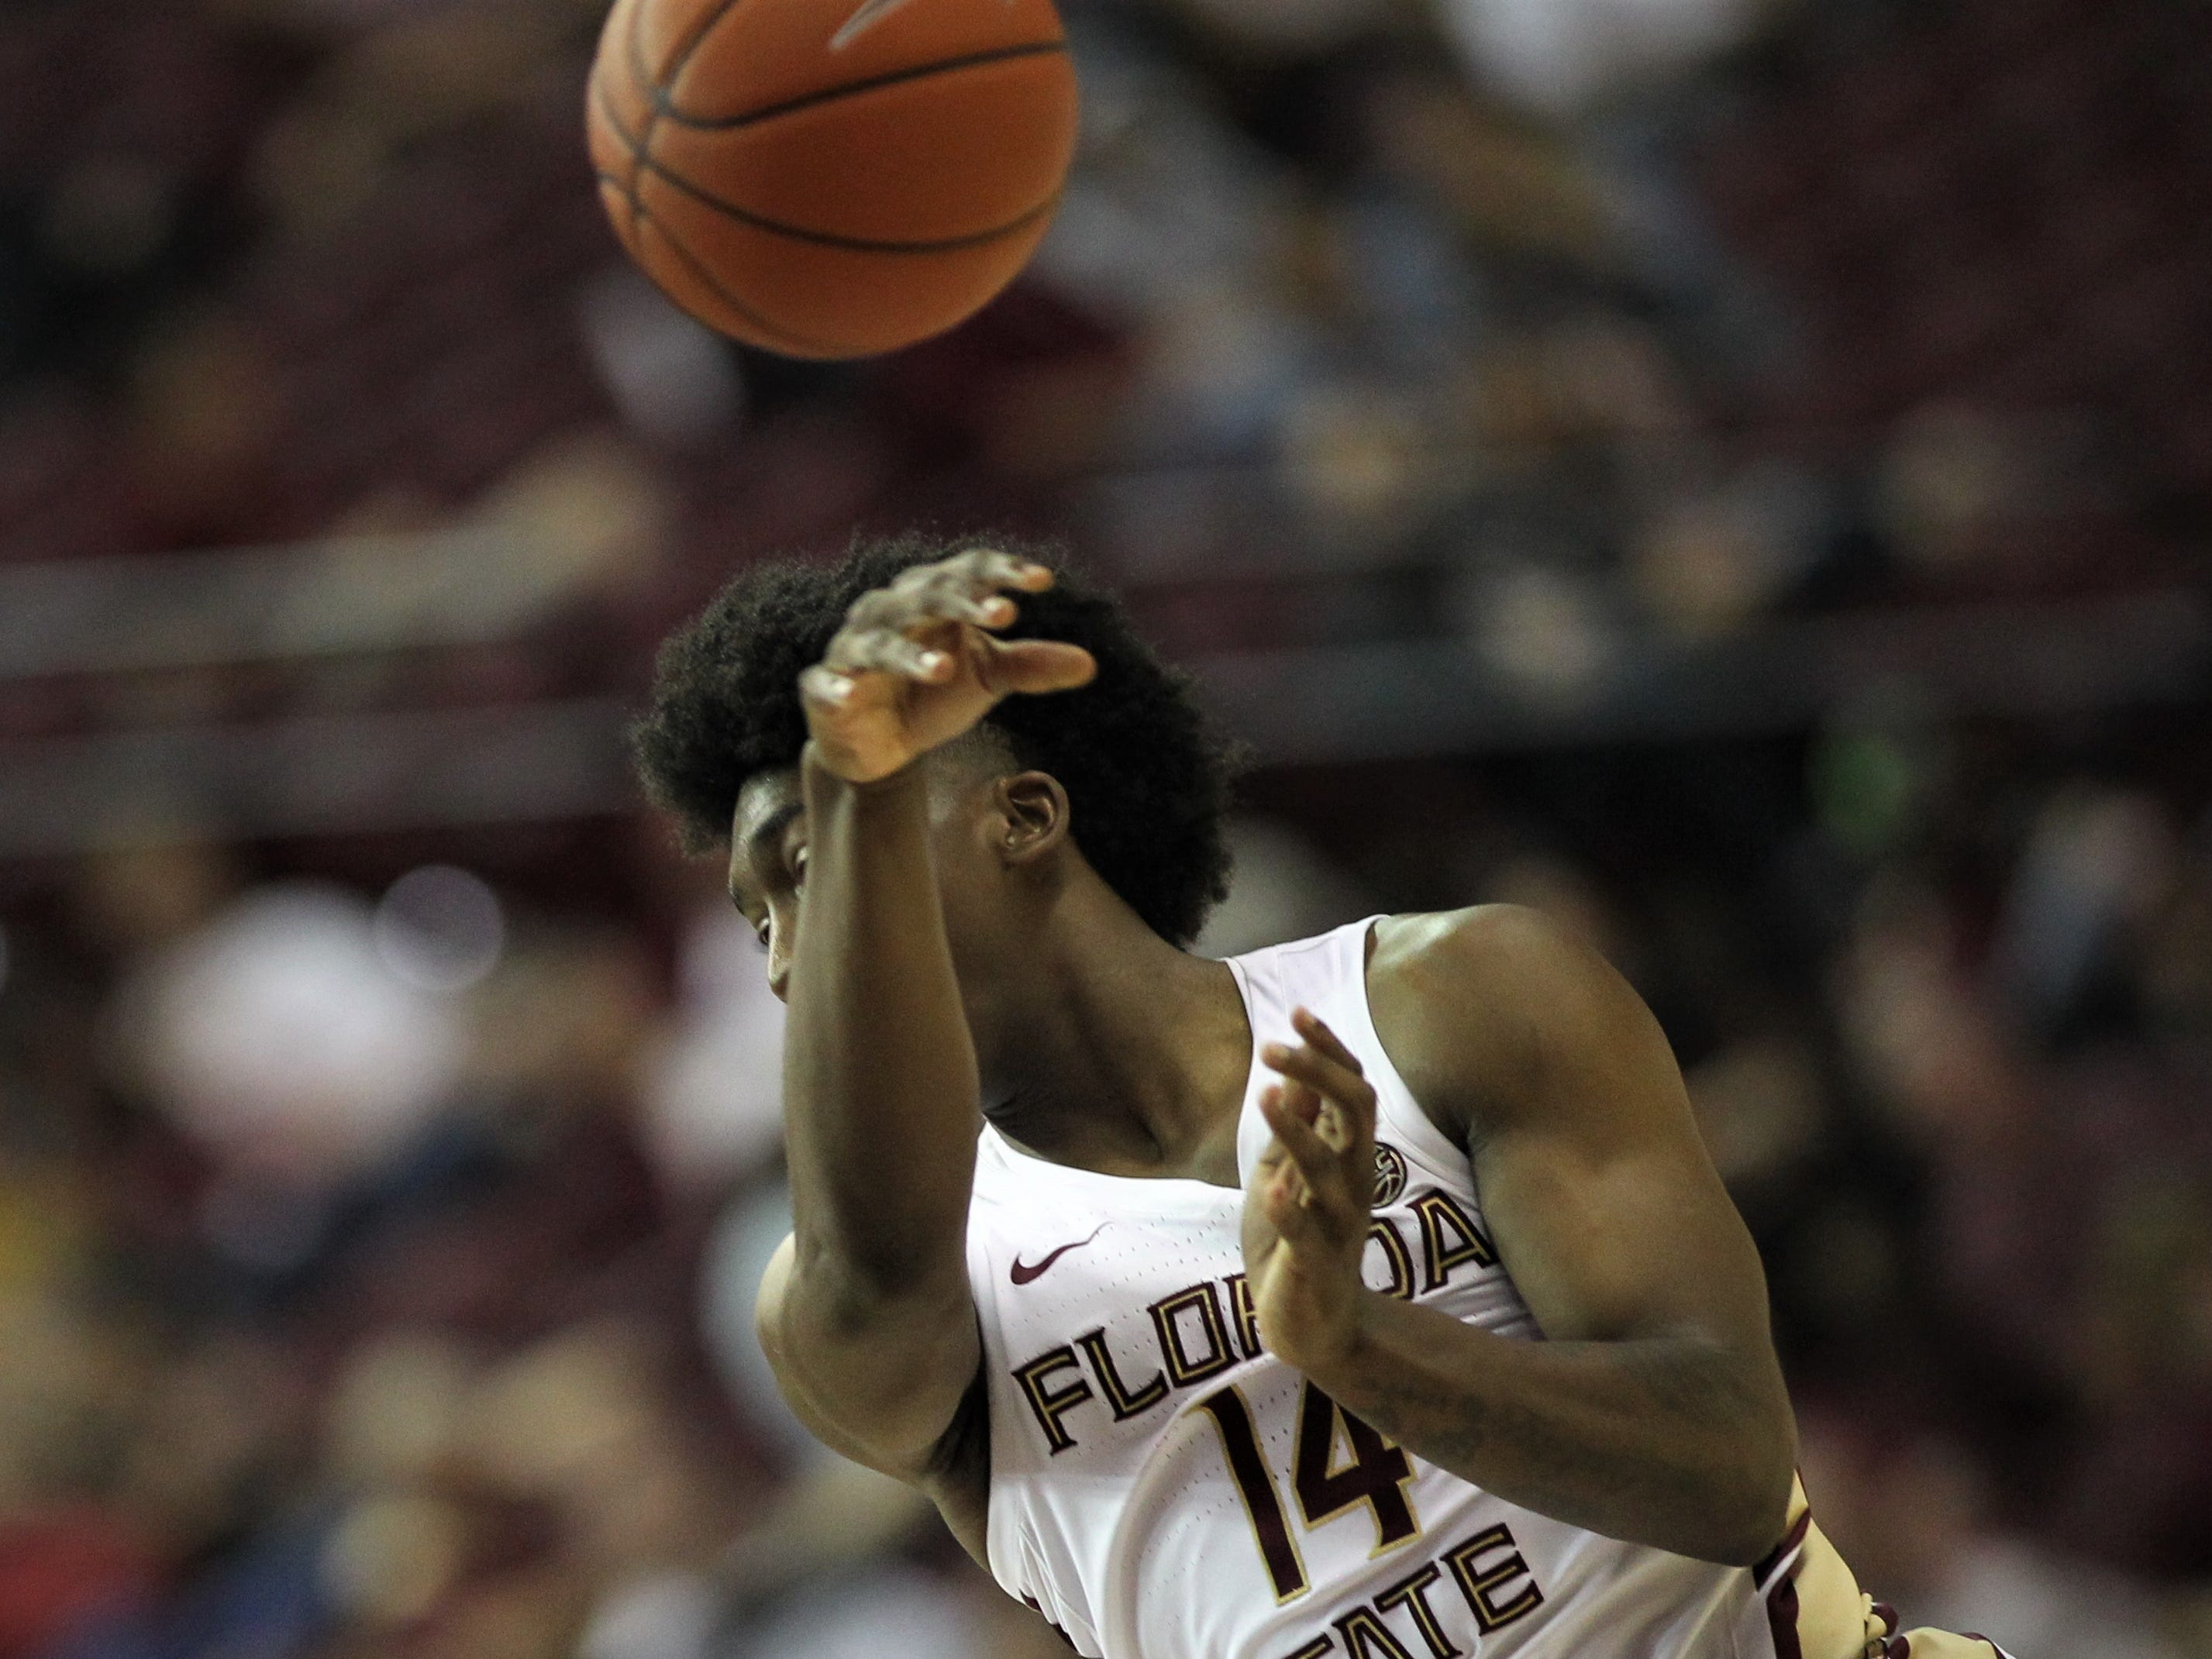 Florida State's Terance Mann throws a no-look pass during the Sunshine Showdown game against Florida on Tuesday at the Tucker Civic Center.